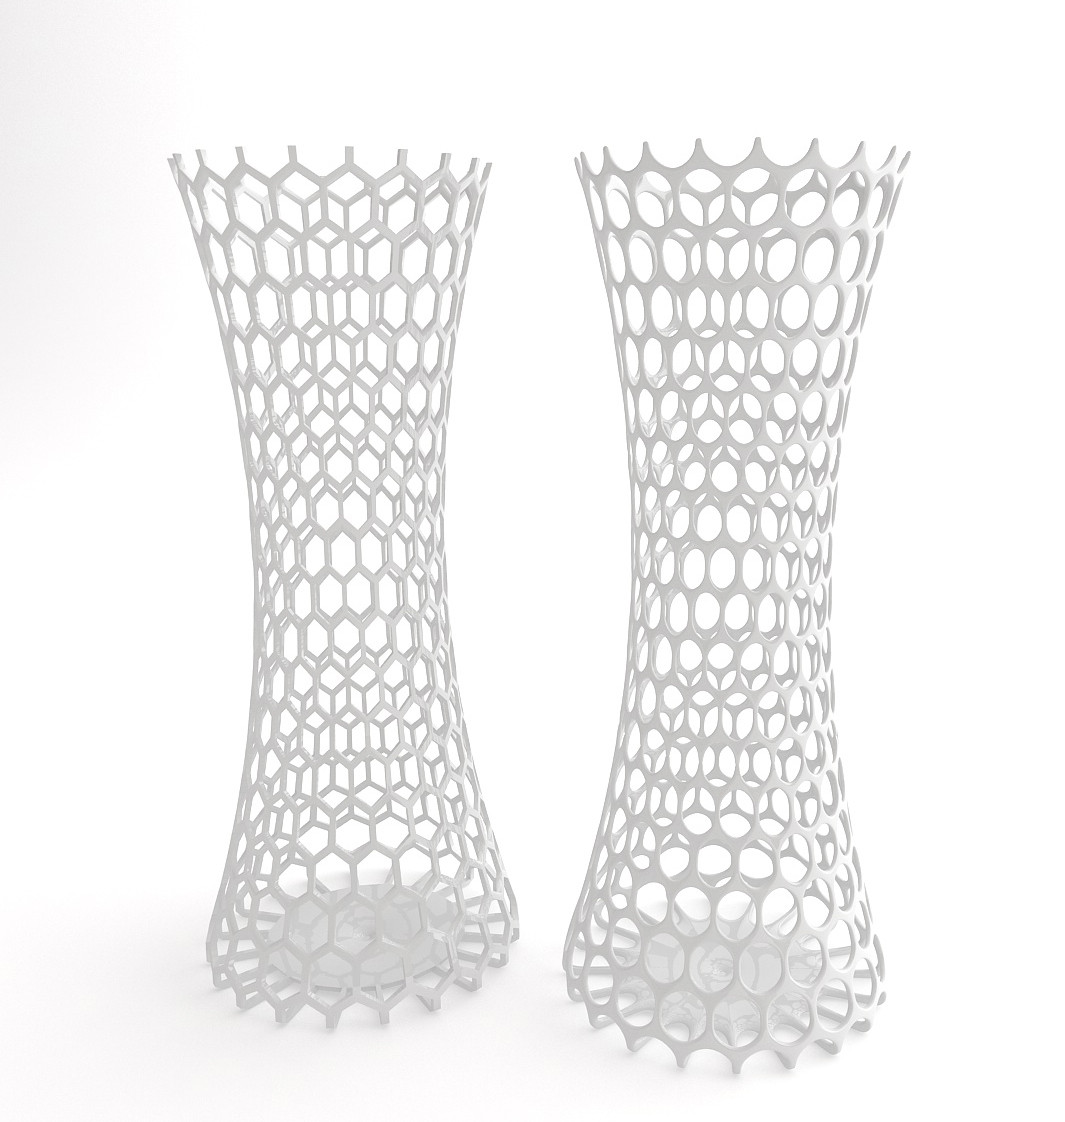 2 Vases with holes